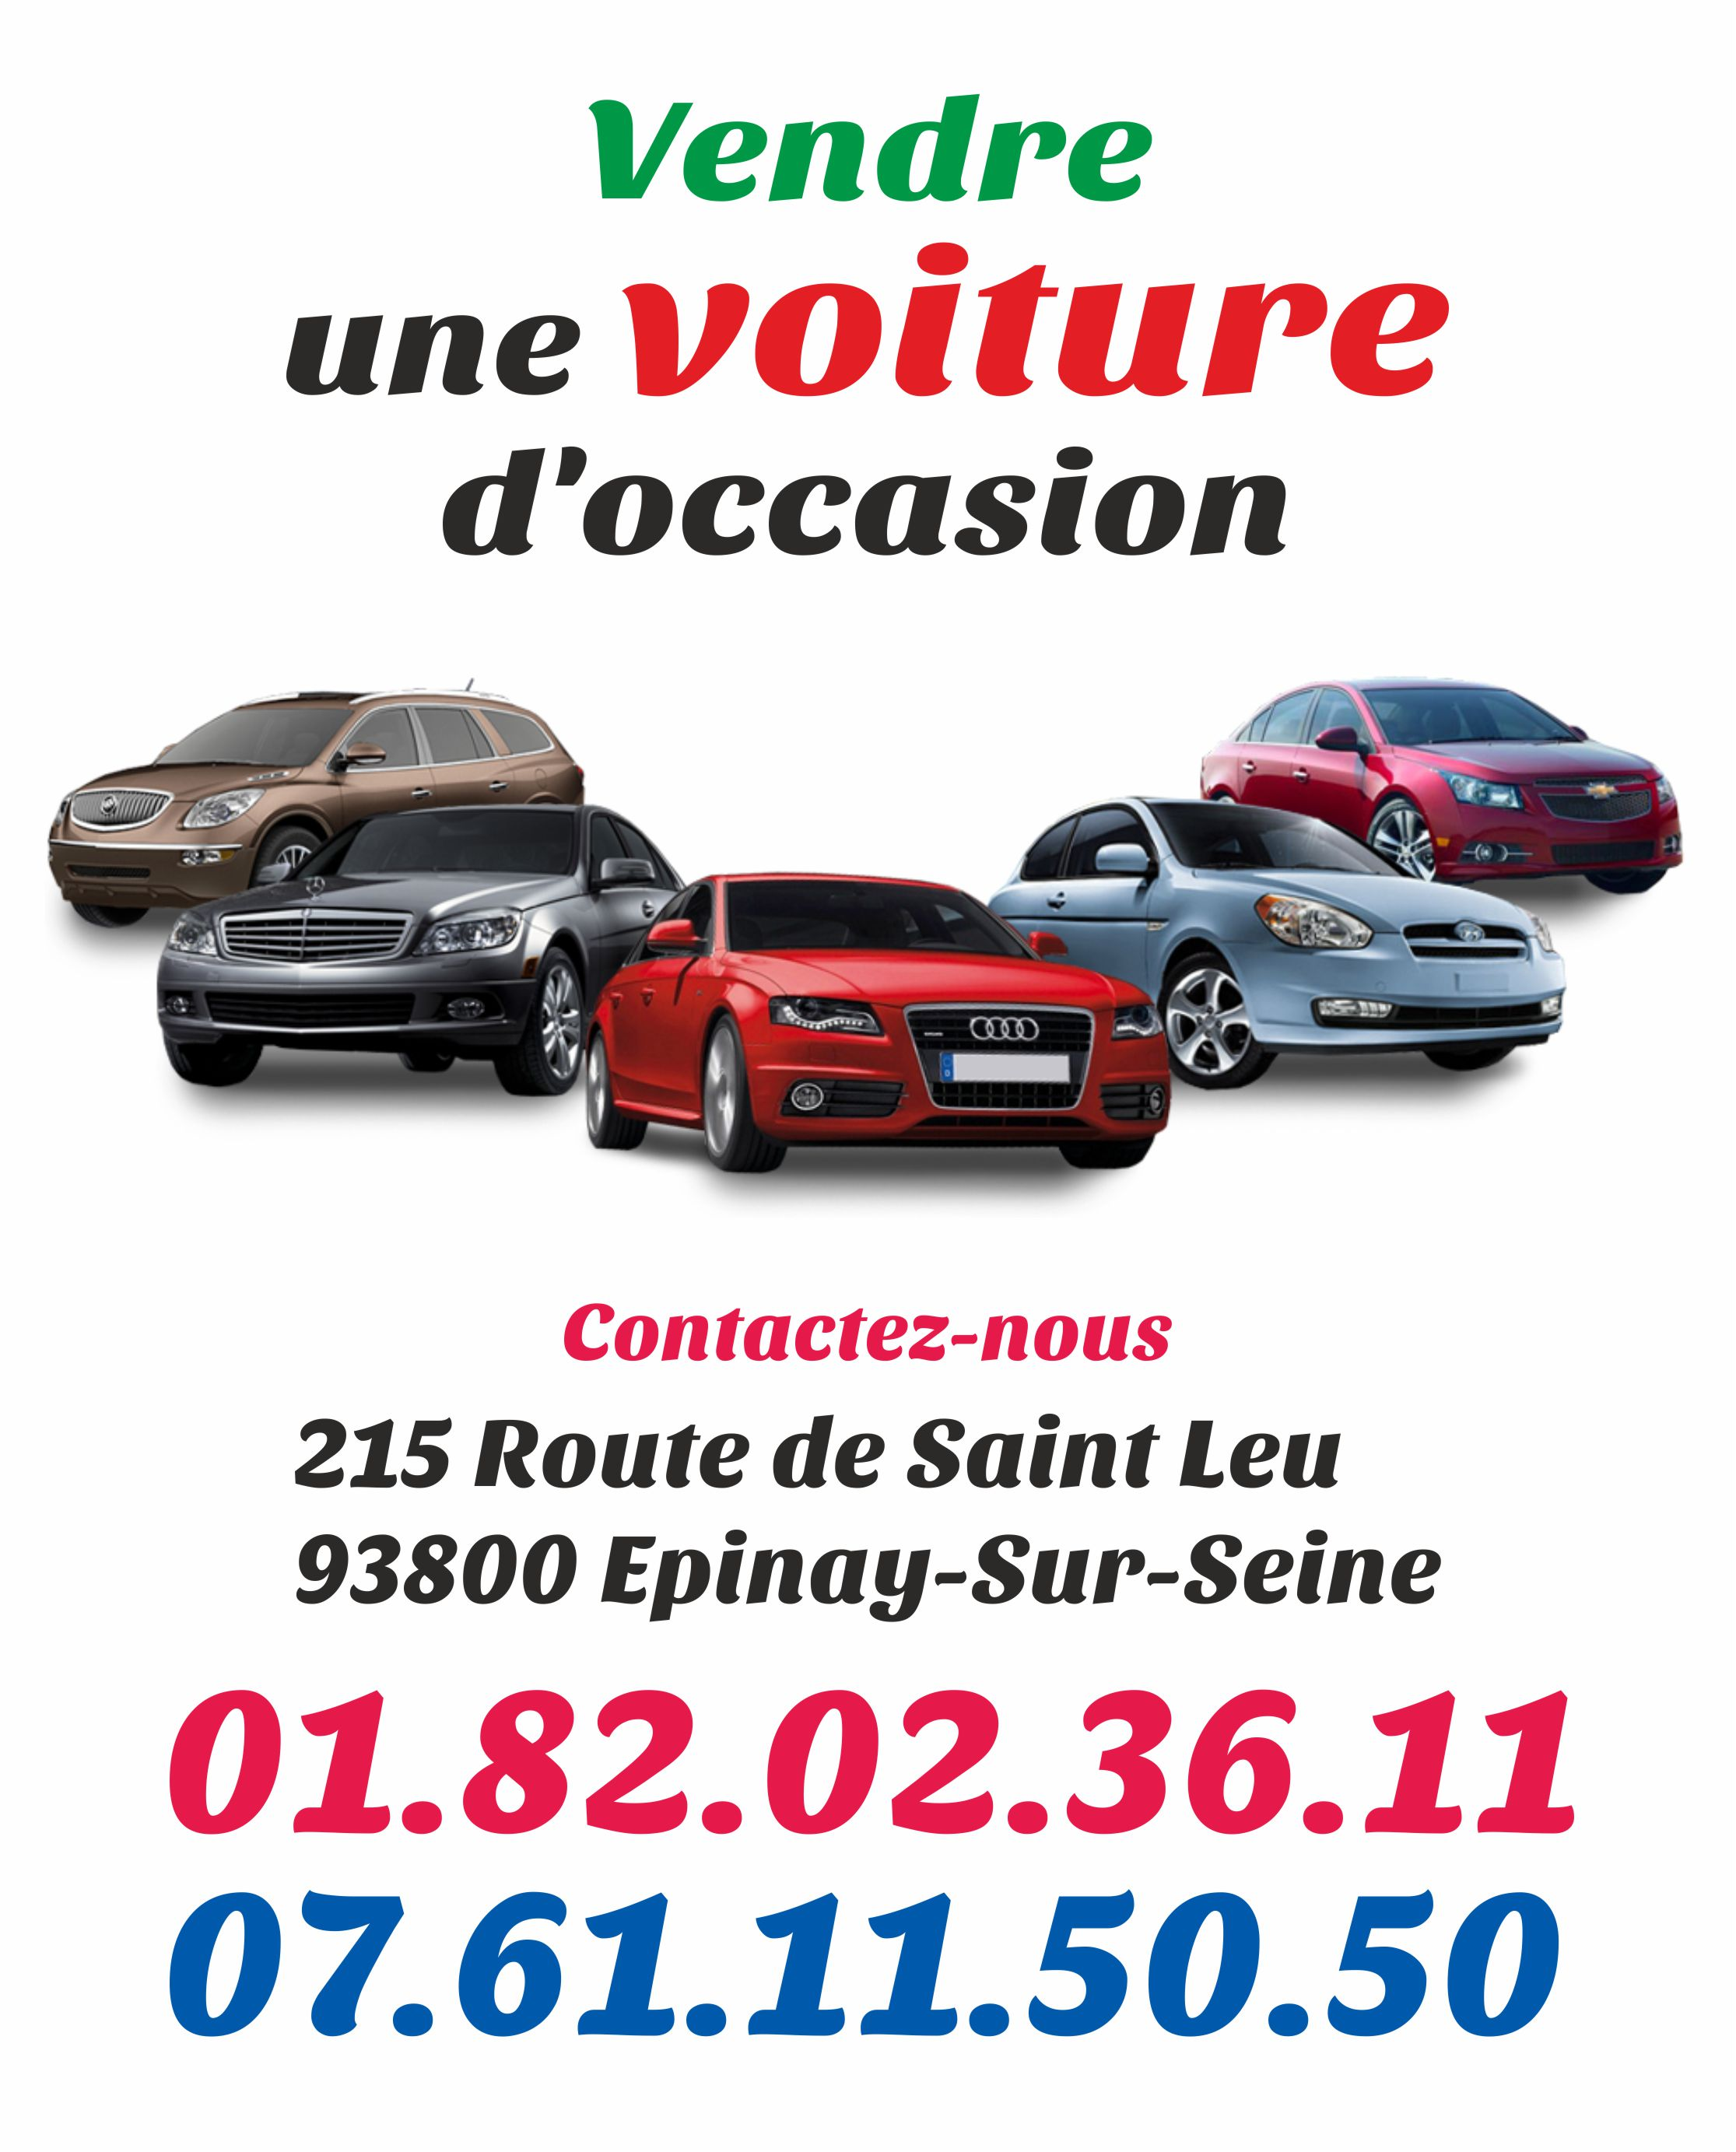 vendre une voiture consulting car r paration automobile. Black Bedroom Furniture Sets. Home Design Ideas